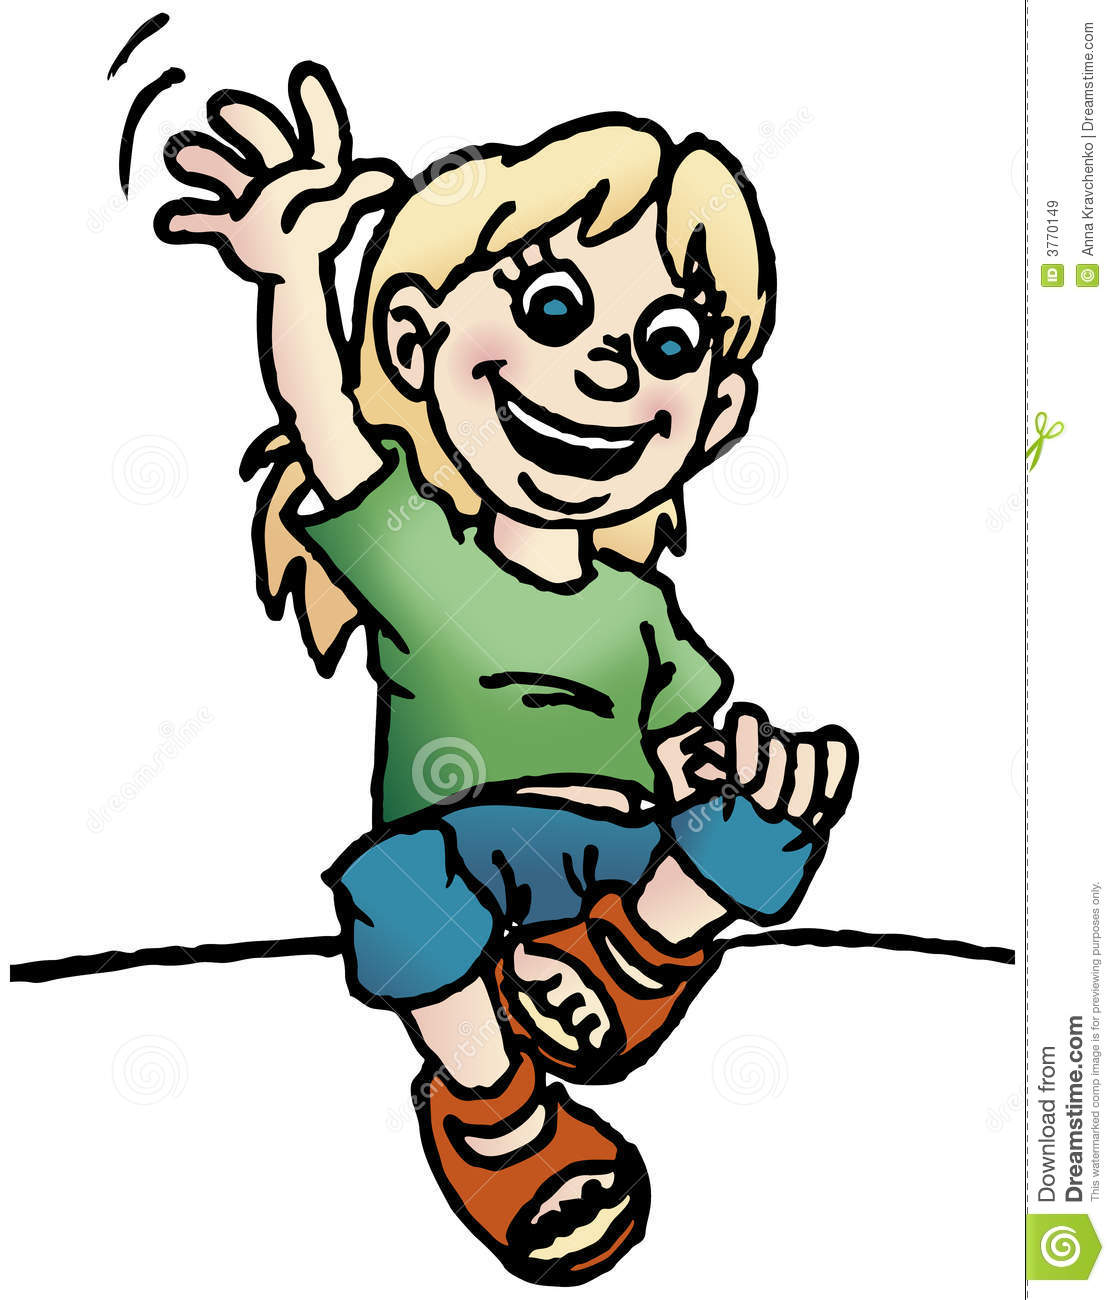 girl waving a hand royalty free stock images image 3770149 boy running clipart black and white boy running clipart